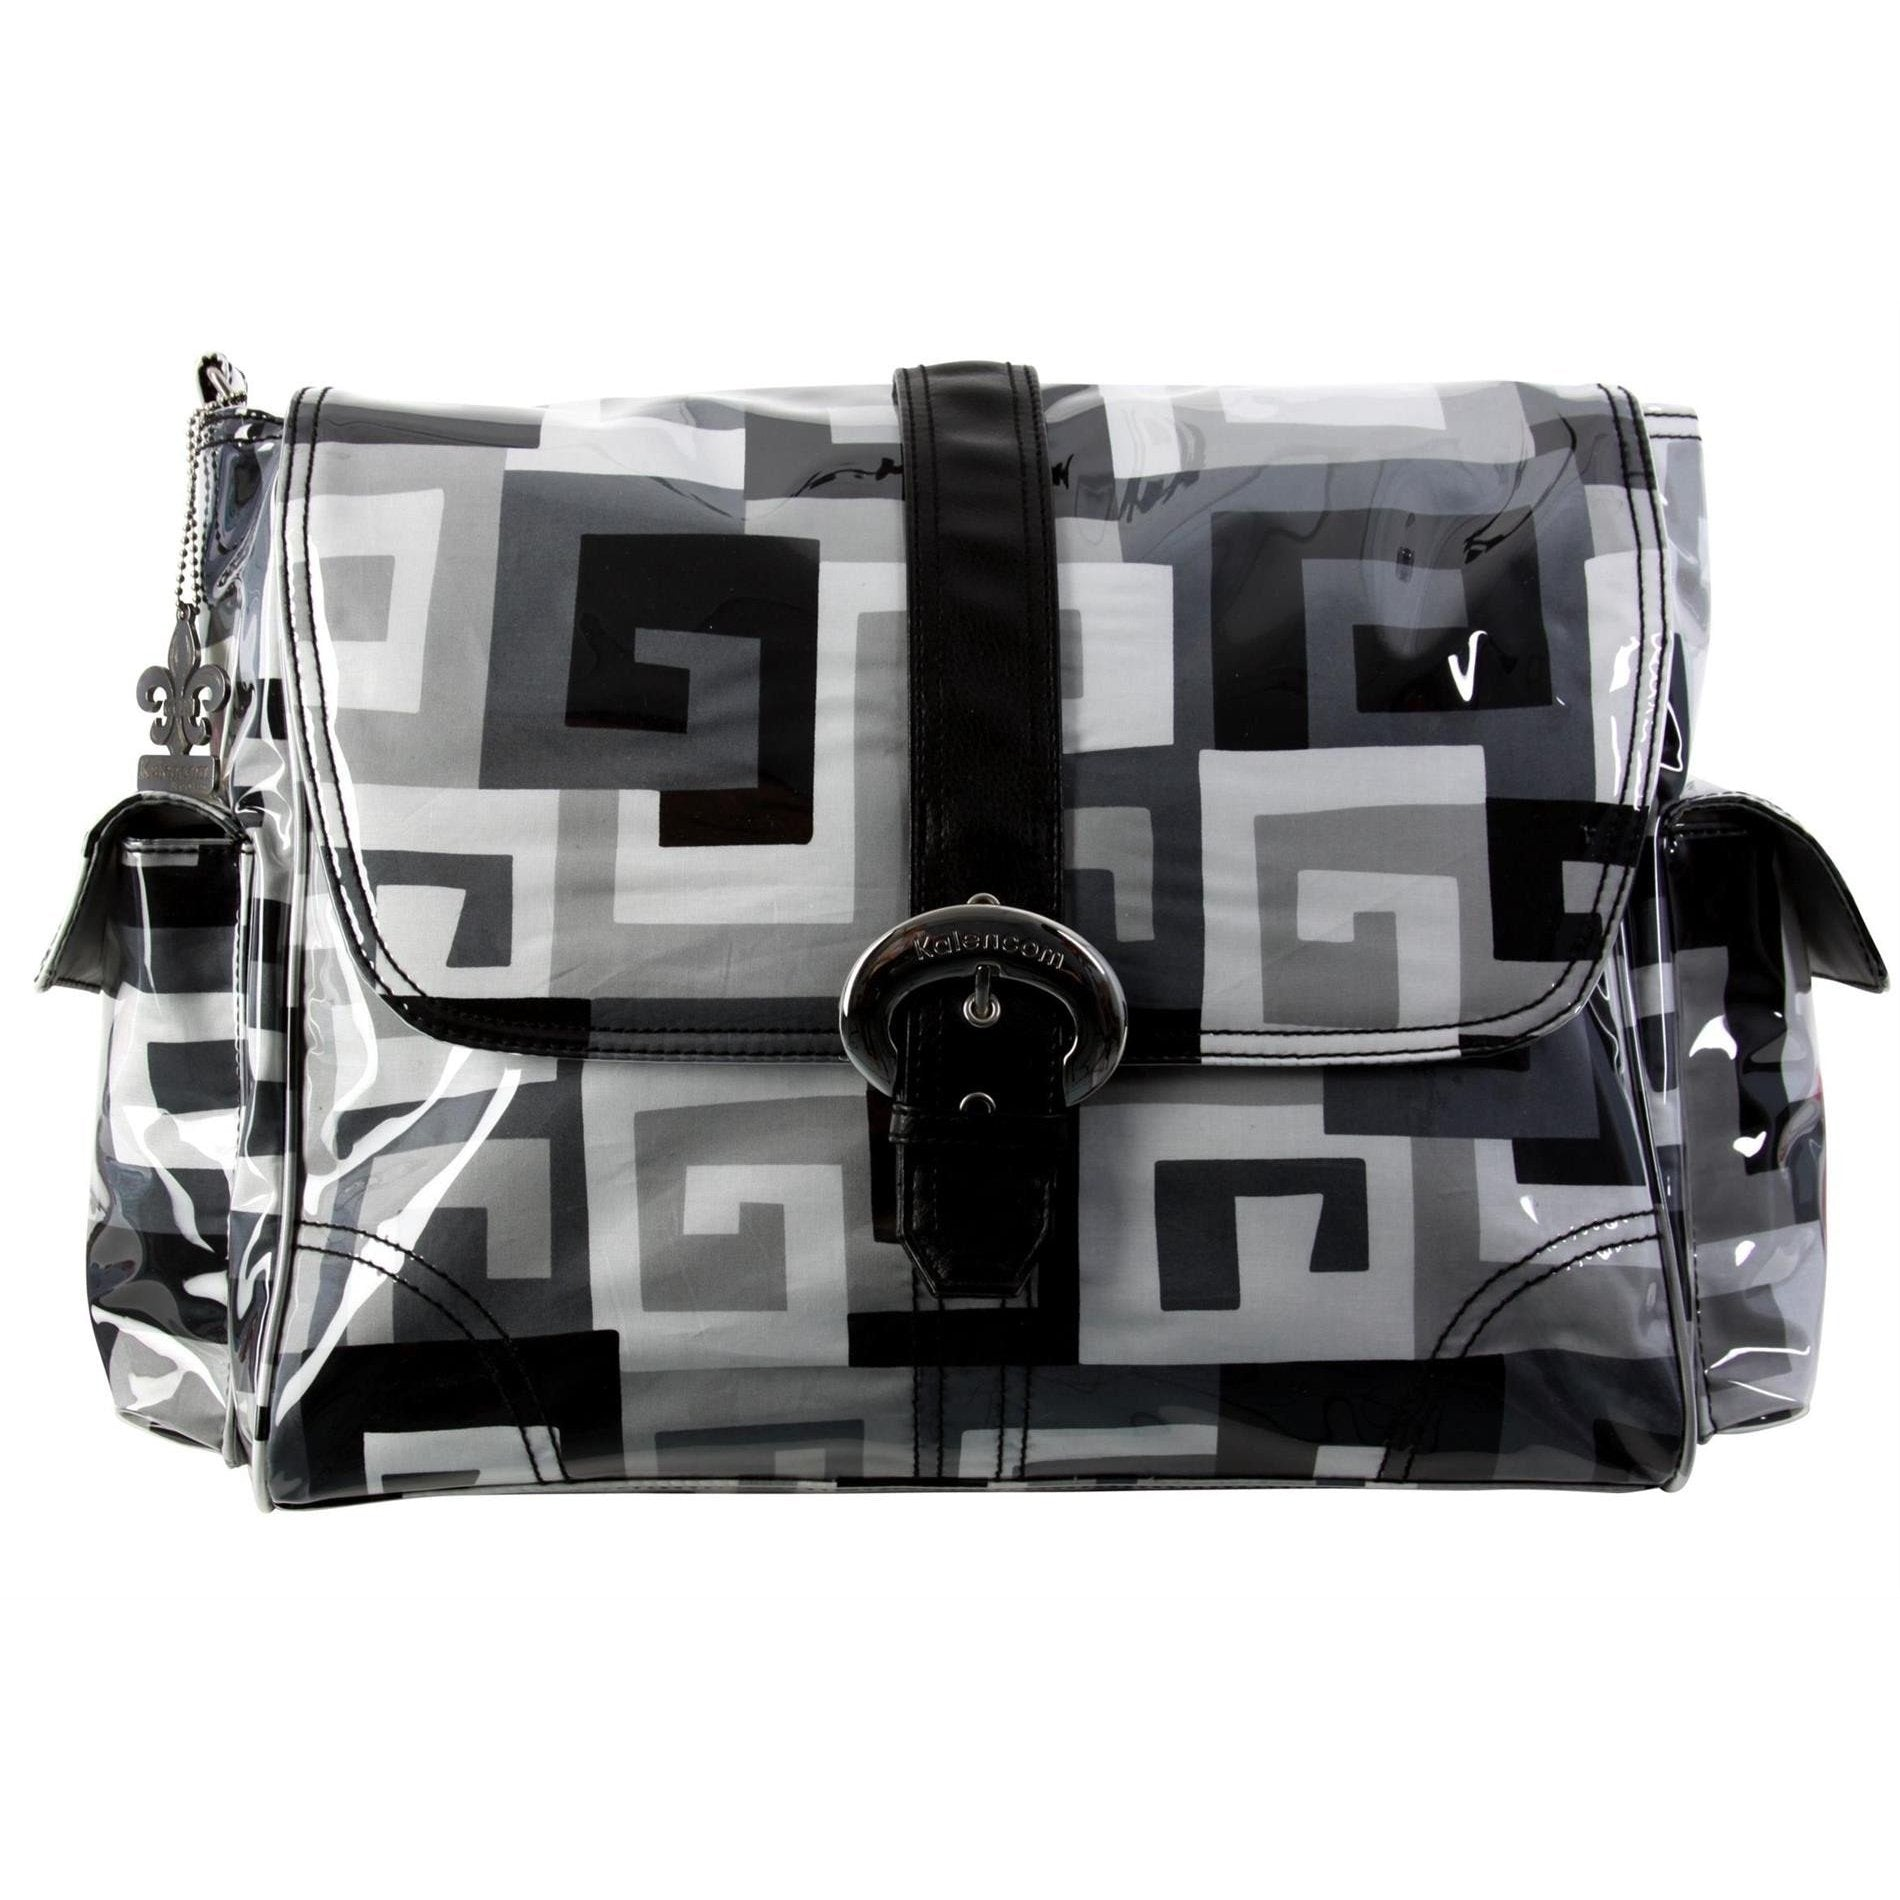 Maze - Black & White Matte Coated Buckle Diaper Bag | Style 2960 - Kalencom-Diaper Bags-Jack and Jill Boutique